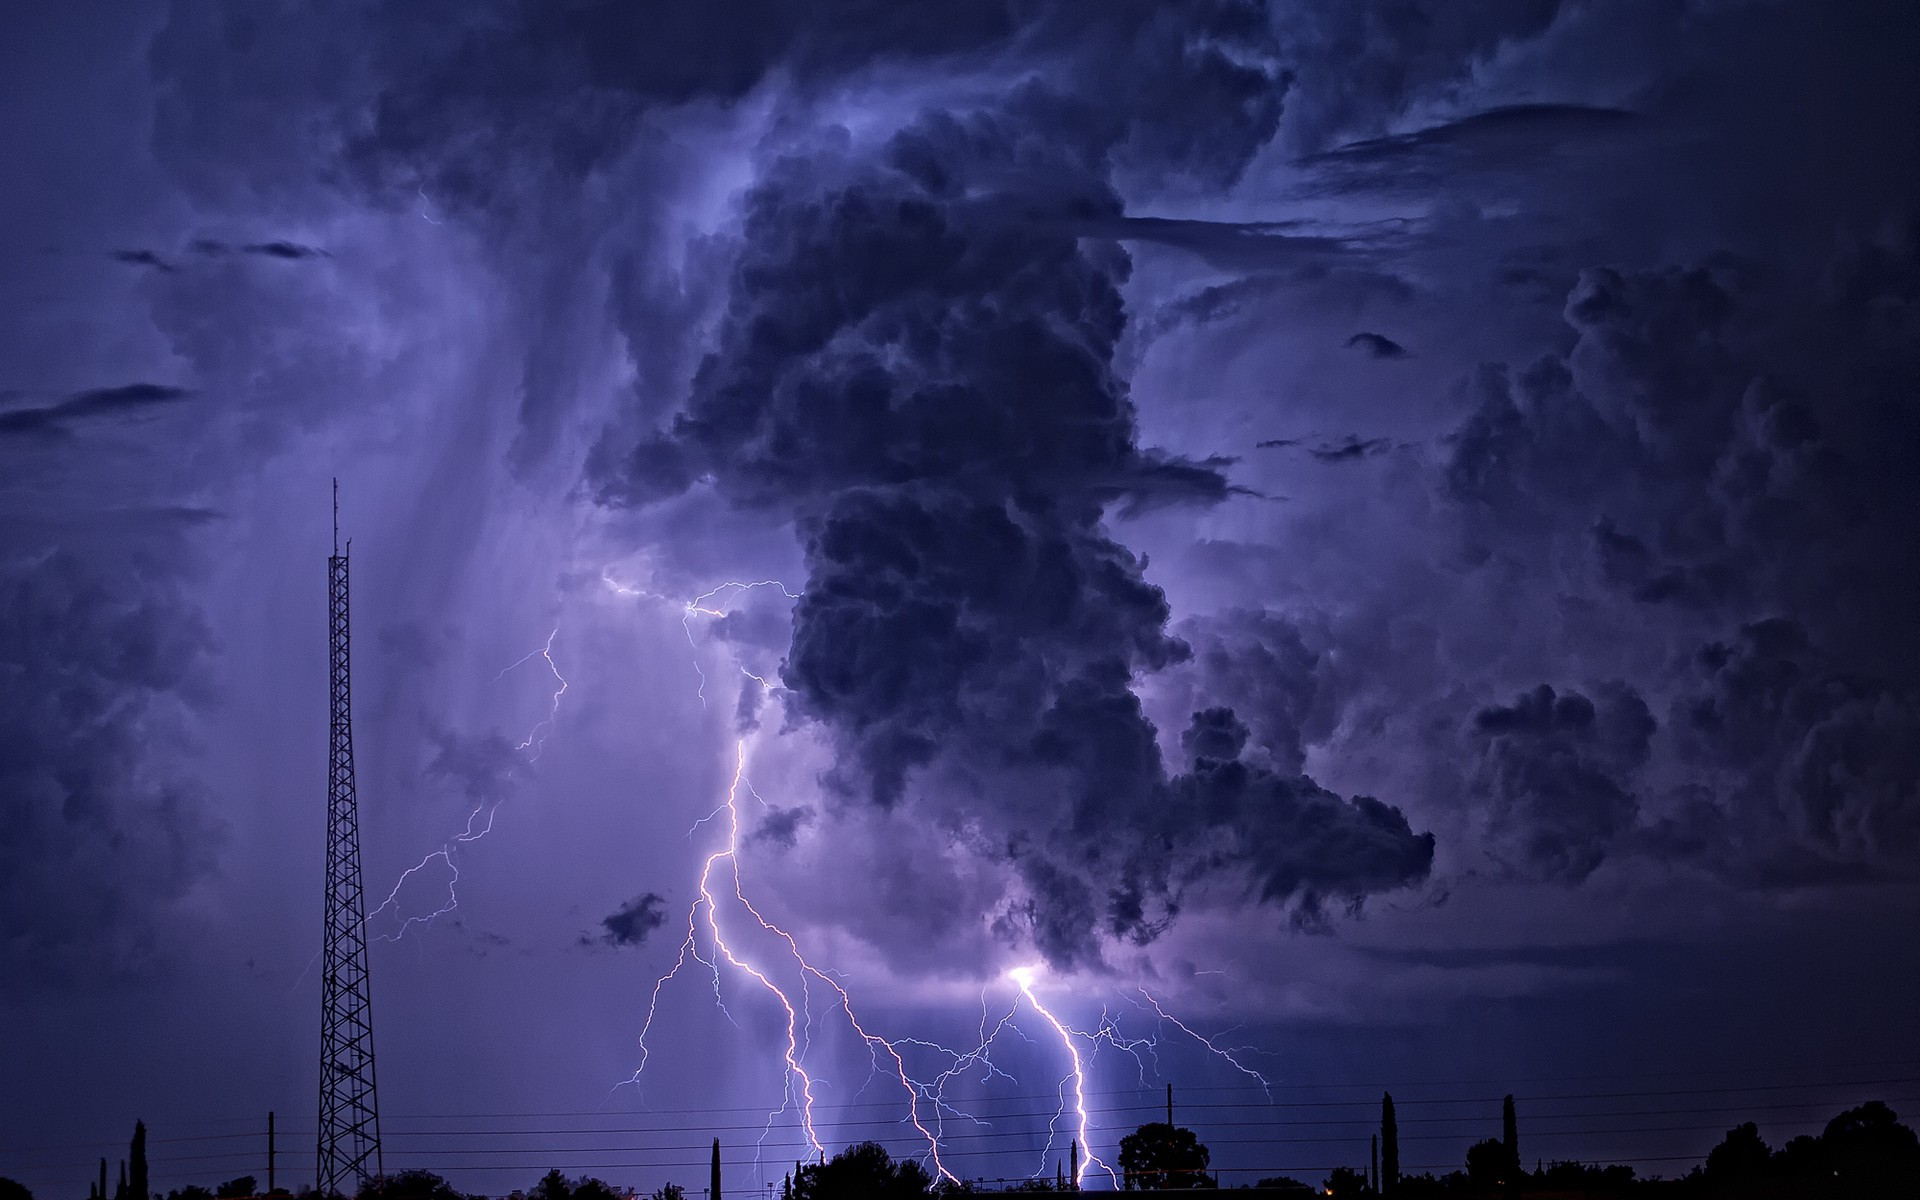 wallpaper wiki lightning storm backgrounds free pic wpd003096